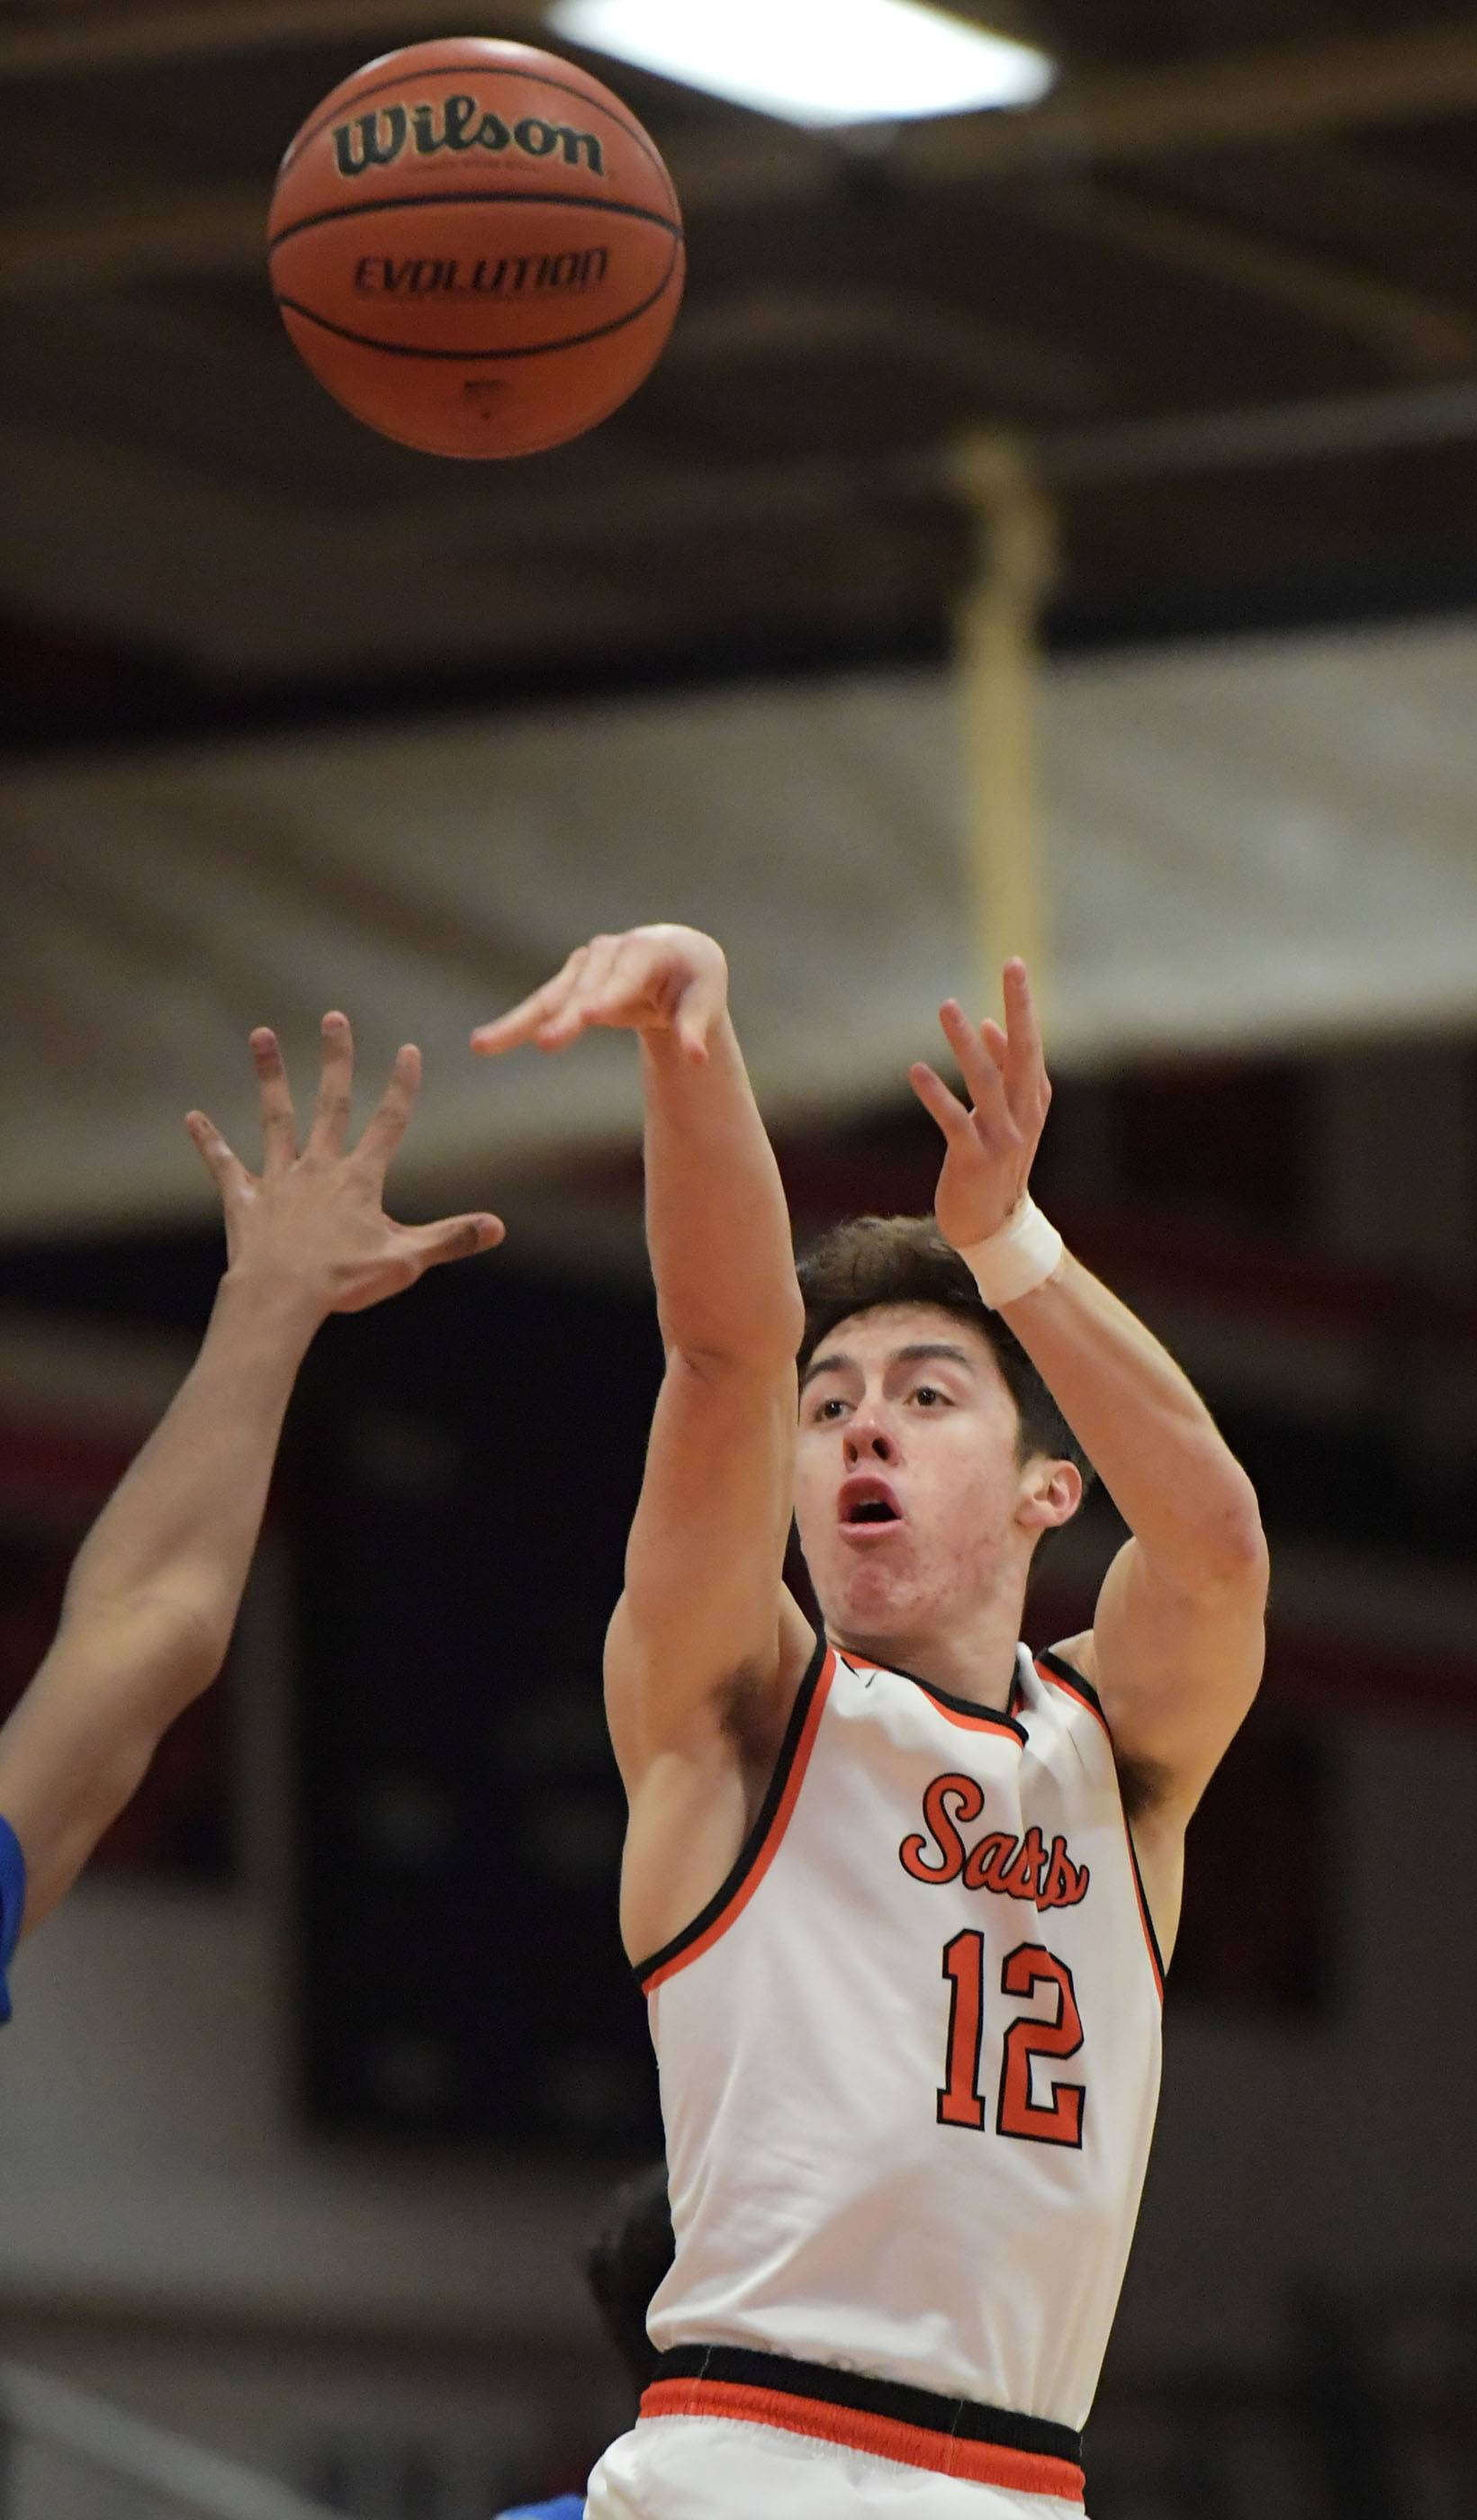 St. Charles East's Nathan Ortiz scores early against Larkin Thursday in a boys basketball game in St. Charles.